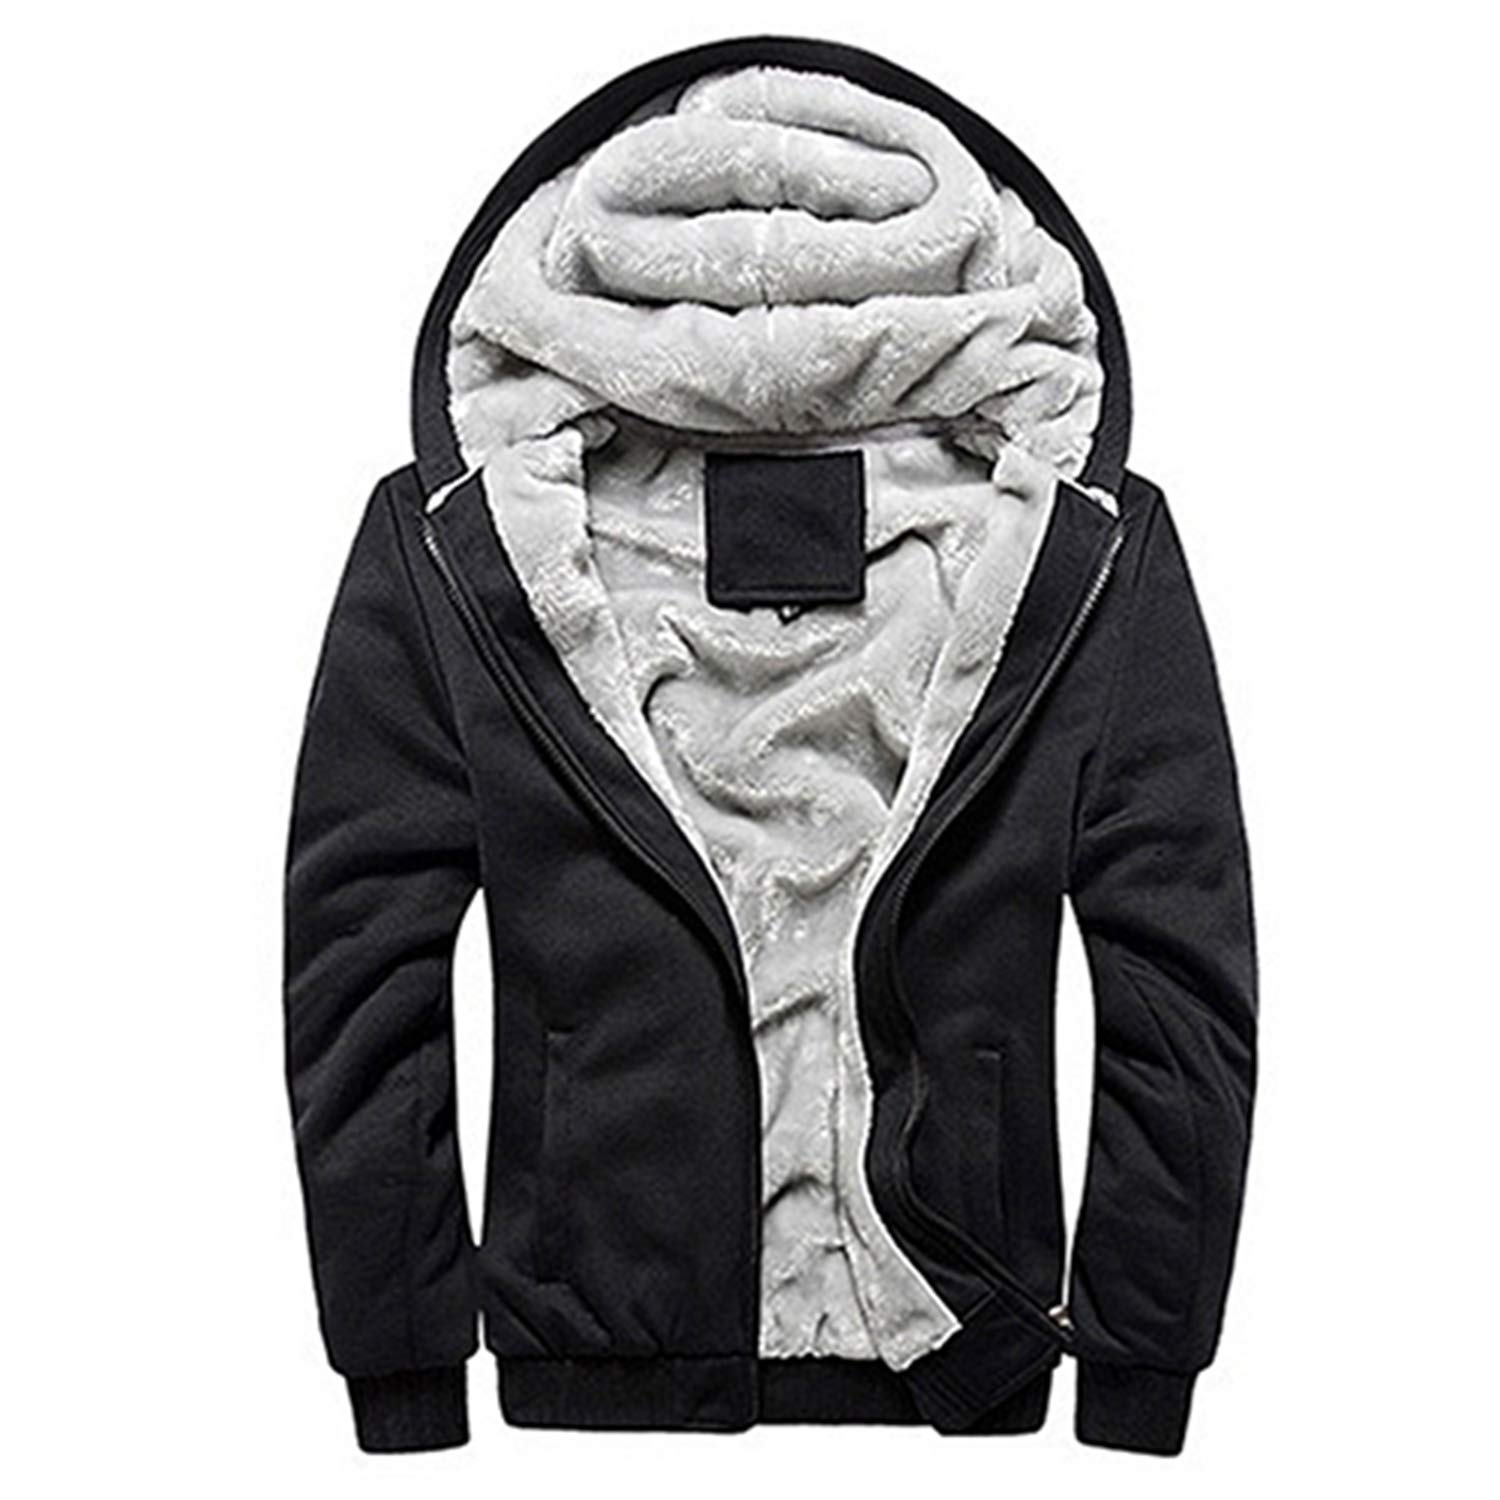 Frozac Winter Down Jacket Outerwear Thick Cotton Coat Casual Hoodies Jacket Outwear Overcoat Zipper Long Sleeve Warm Clothing